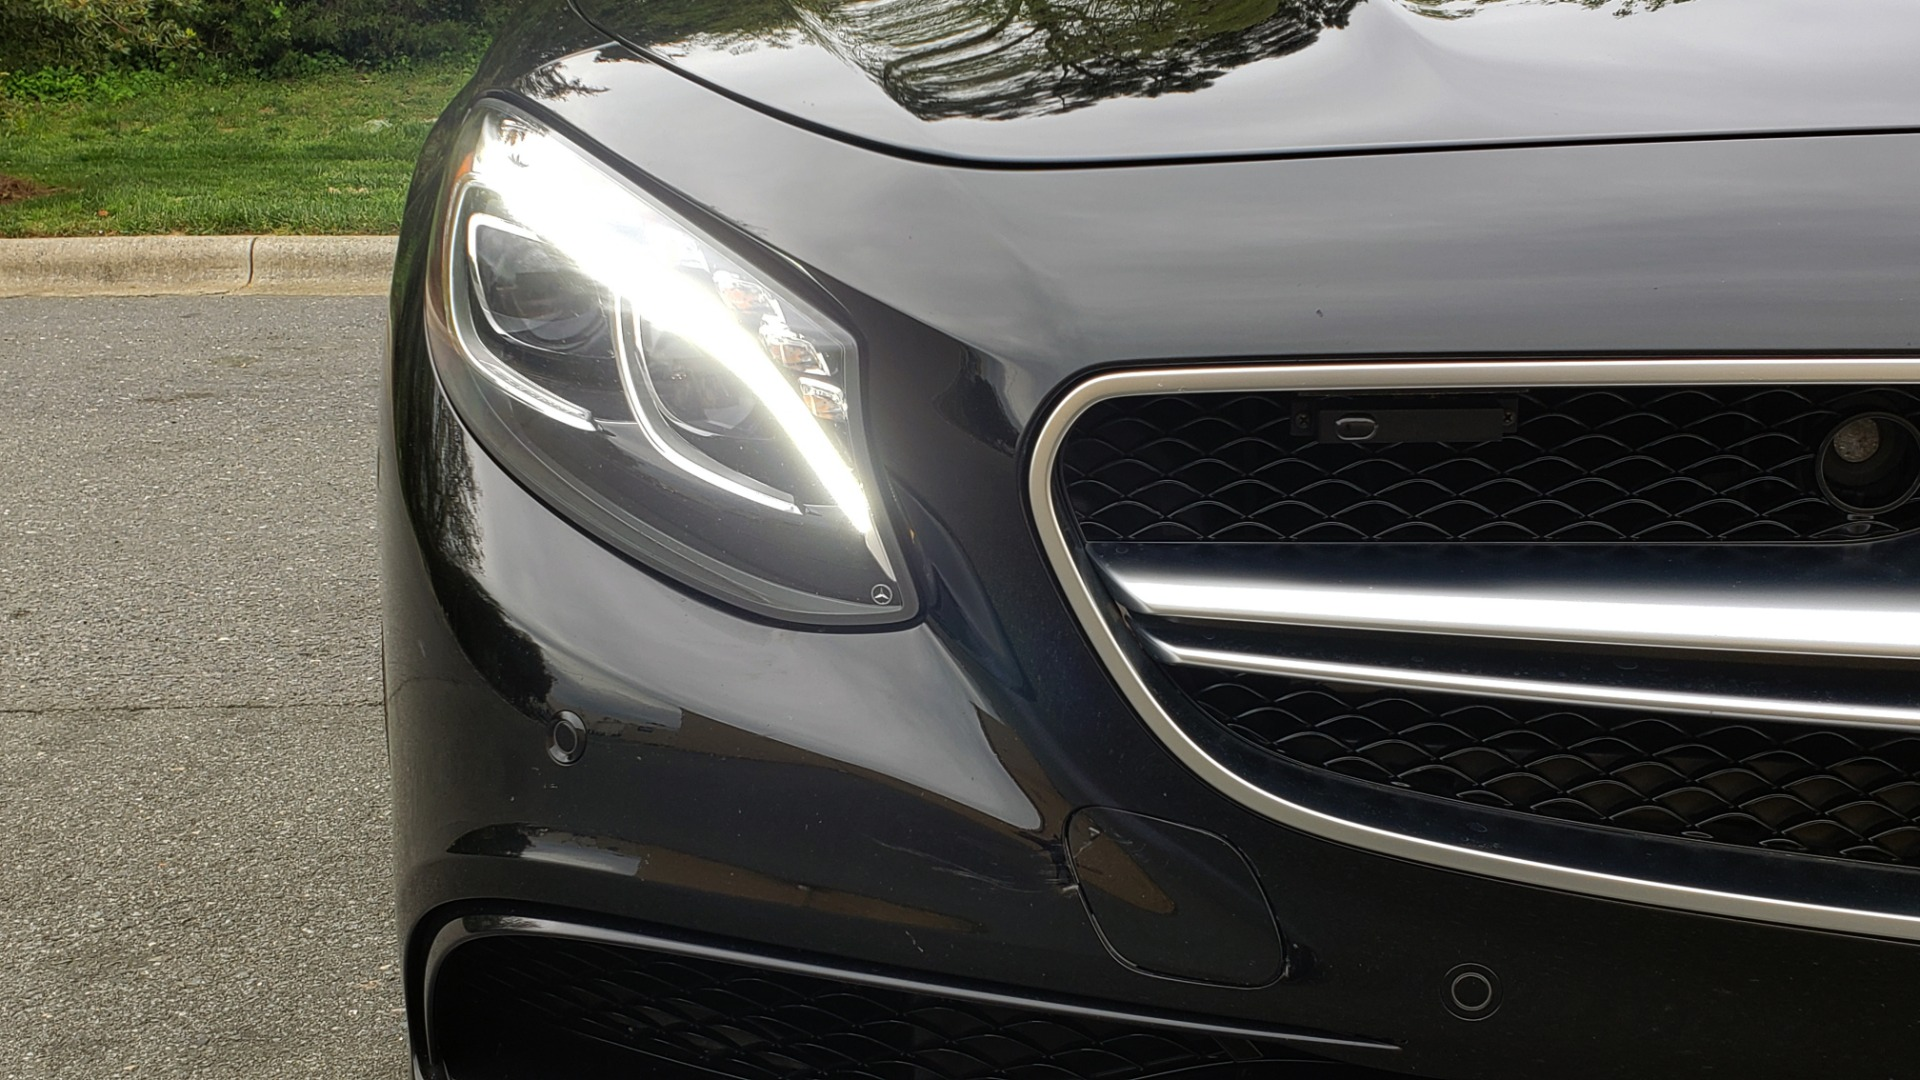 Used 2015 Mercedes-Benz S-CLASS S 63 AMG 4MATIC / DRVR ASST / NIGHT VIEW ASST PLUS / MAGIC SKY for sale Sold at Formula Imports in Charlotte NC 28227 30